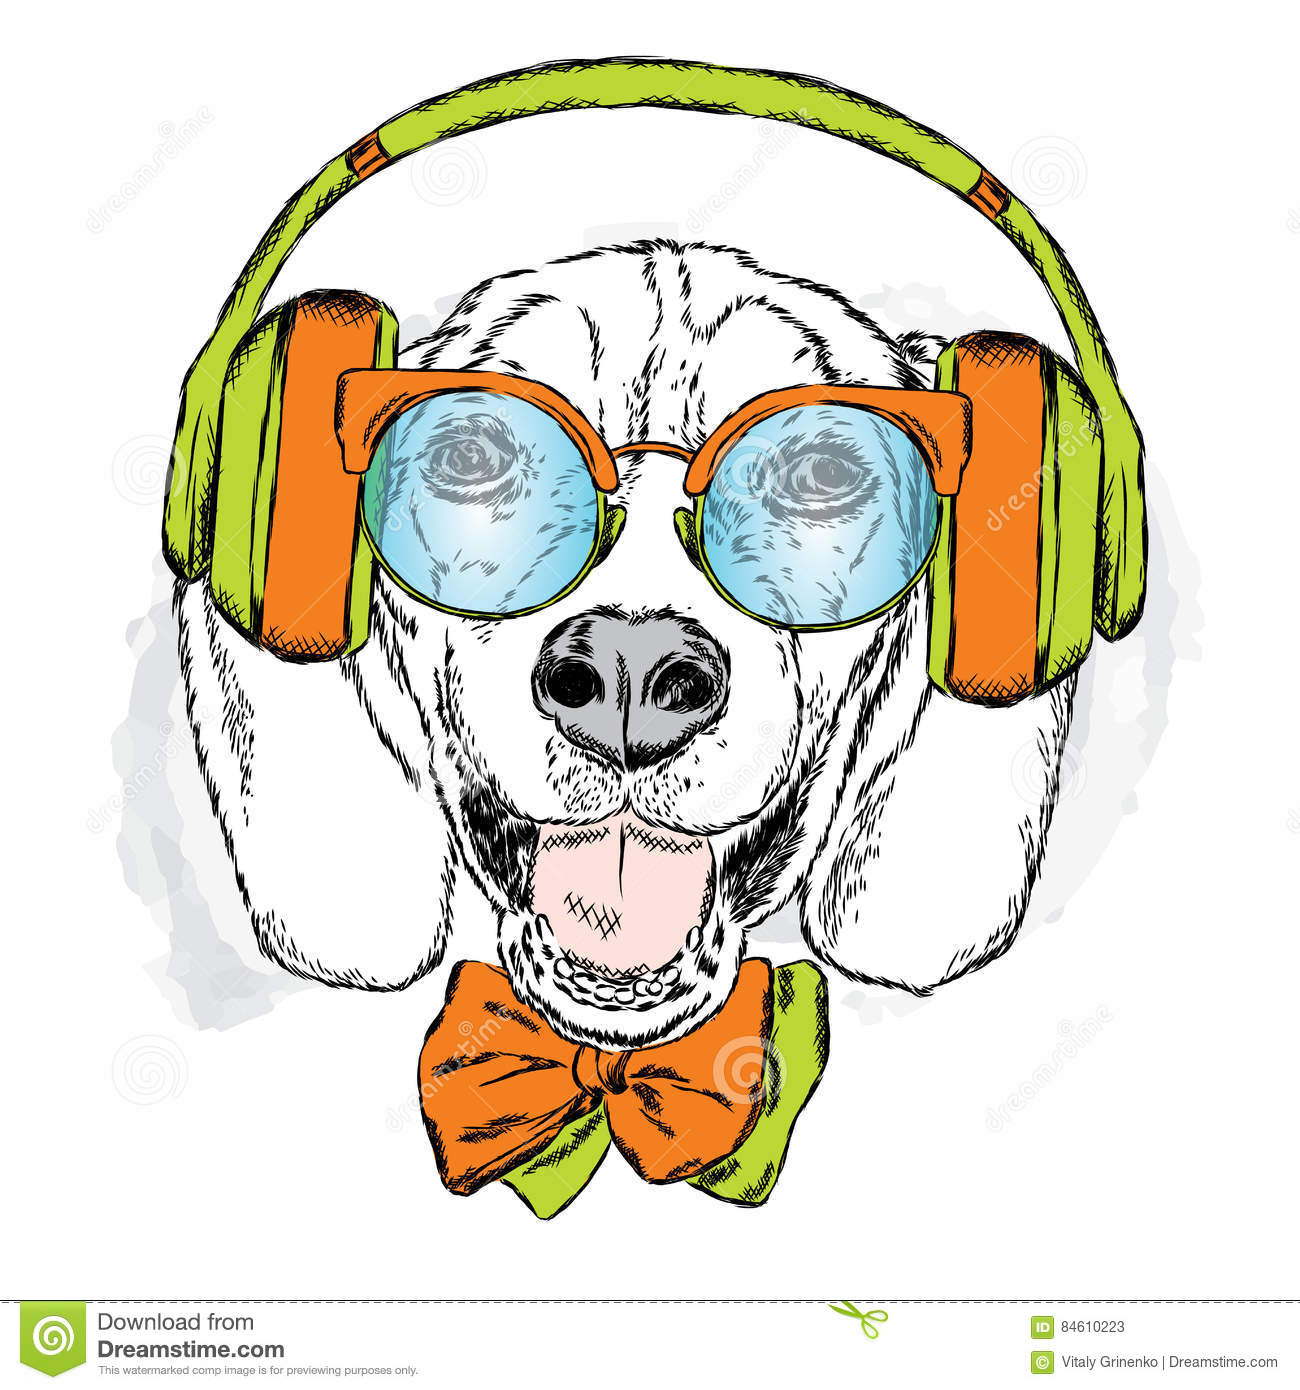 Funny Dog Wearing Headphones, Sunglasses And Tie. Vector